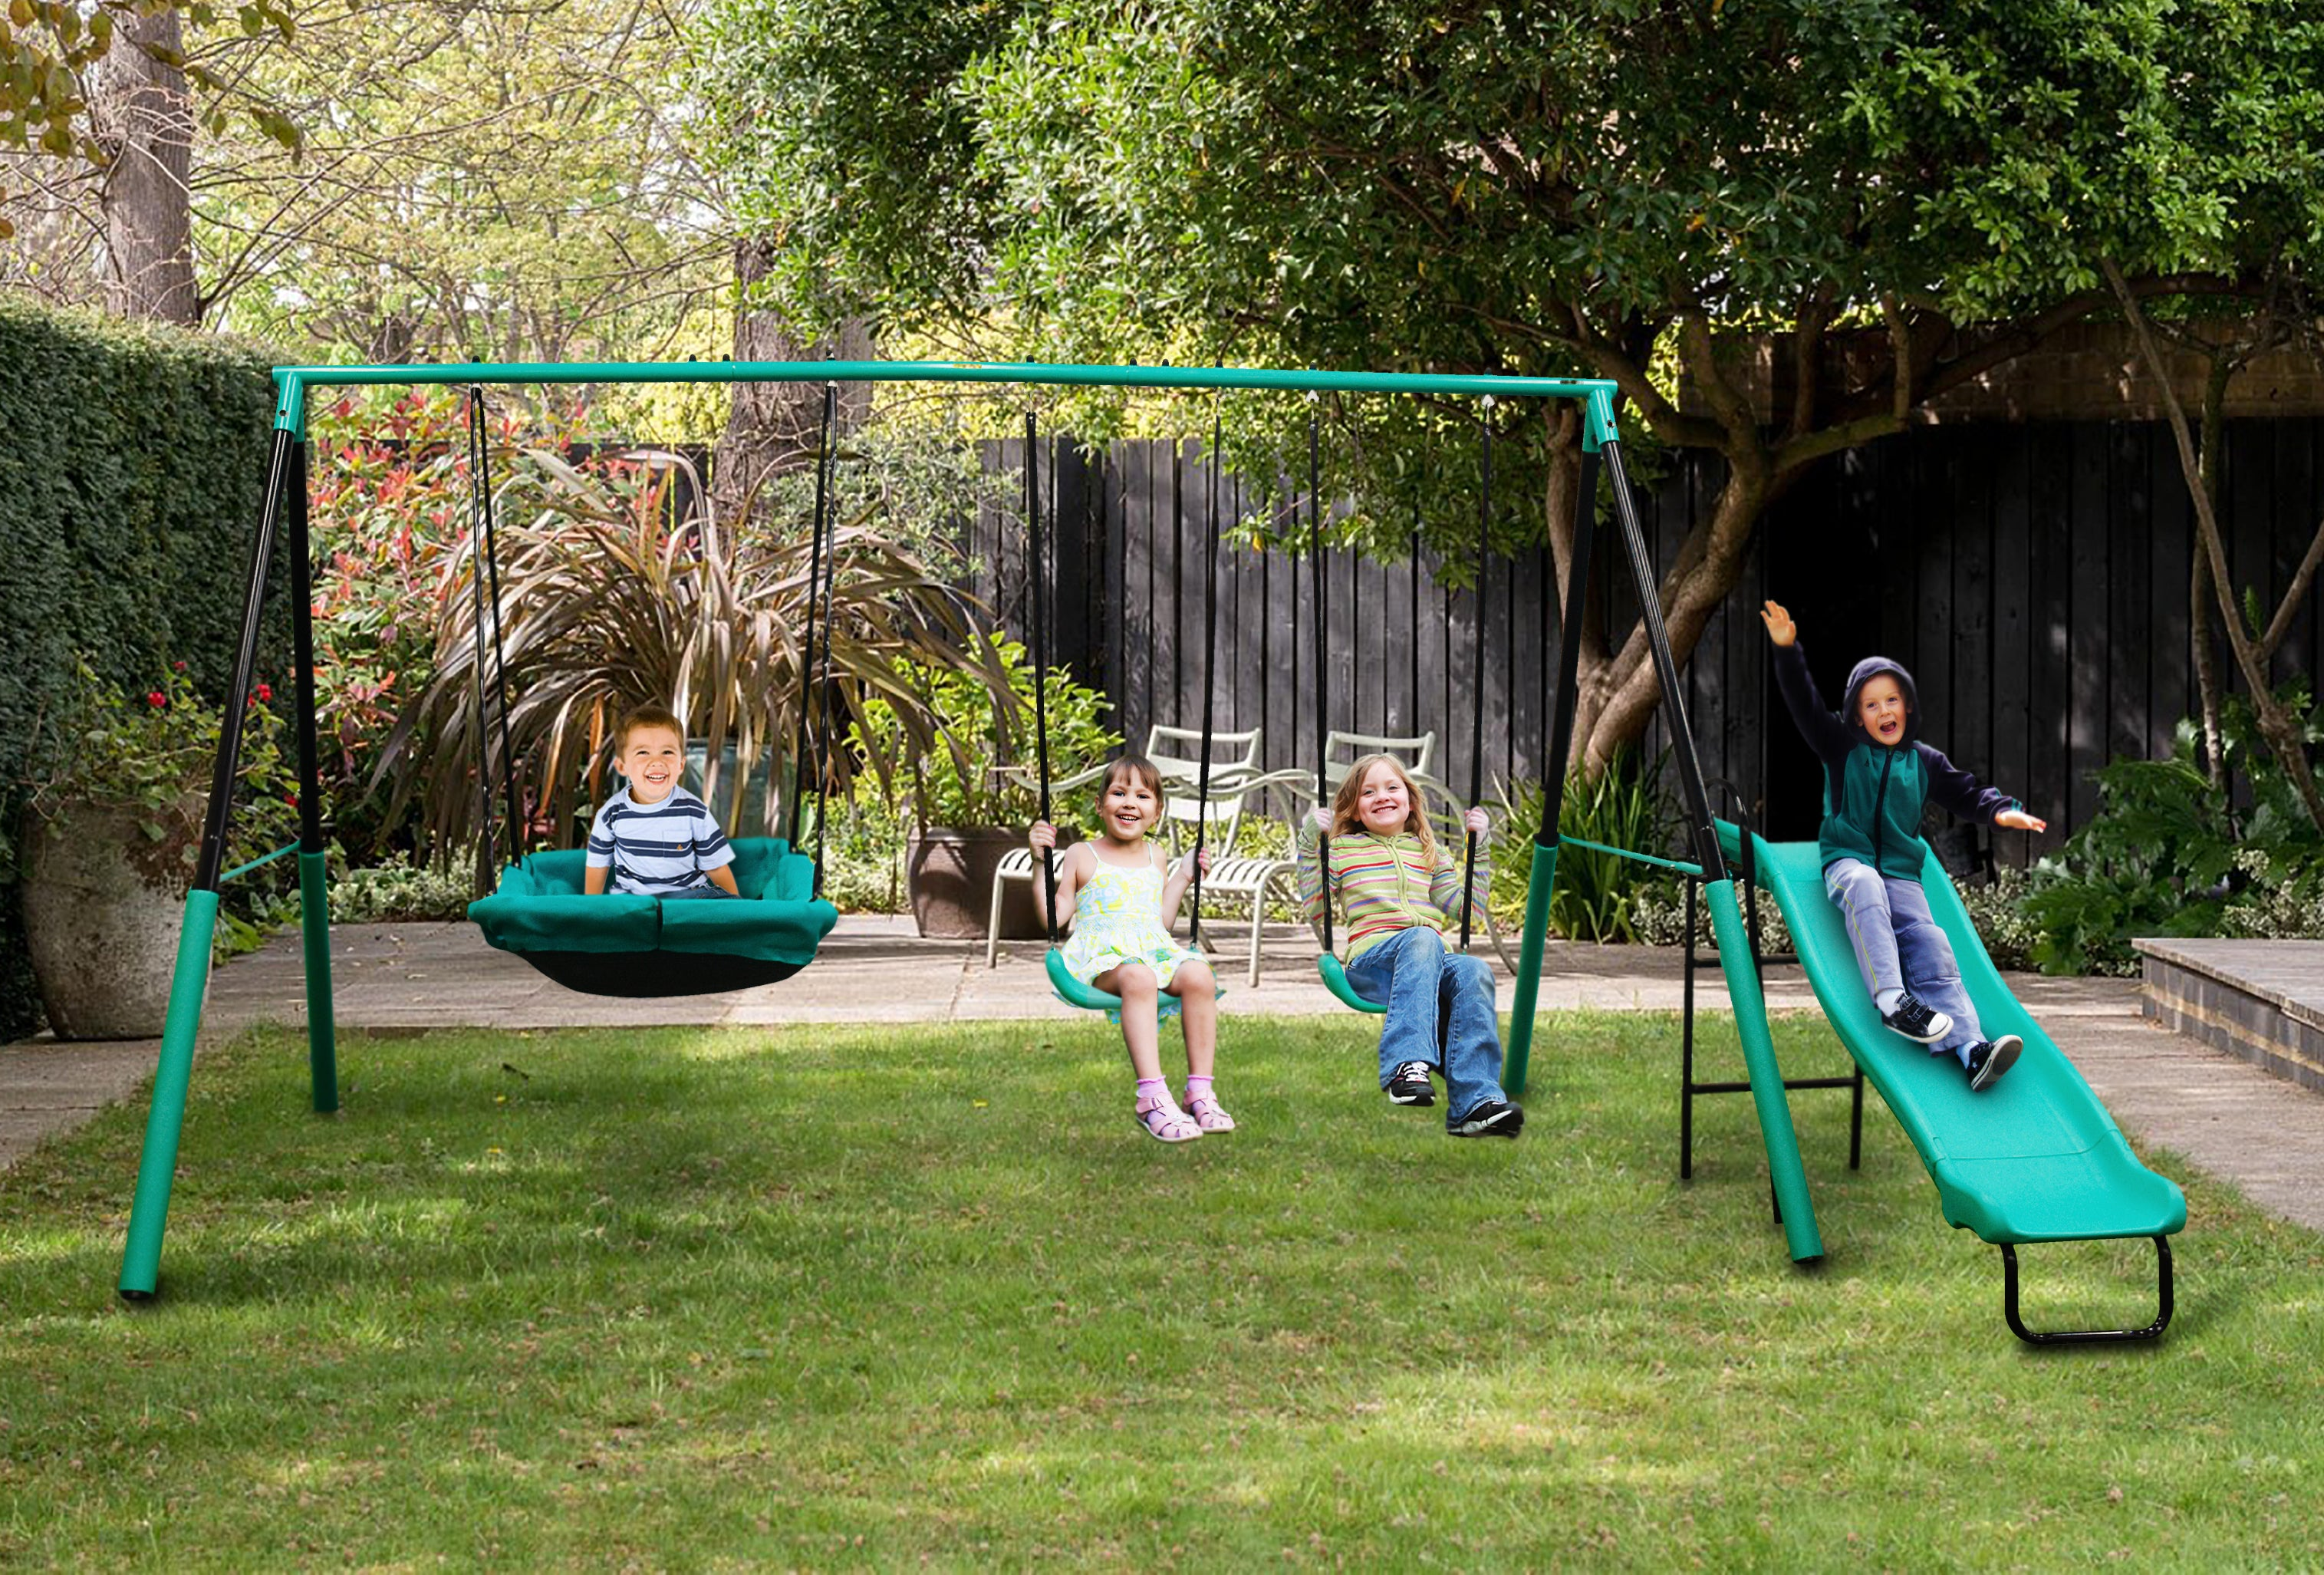 Magic Carpet A-Frame Metal Swing Set- For 1 to 5 Children & Toddlers